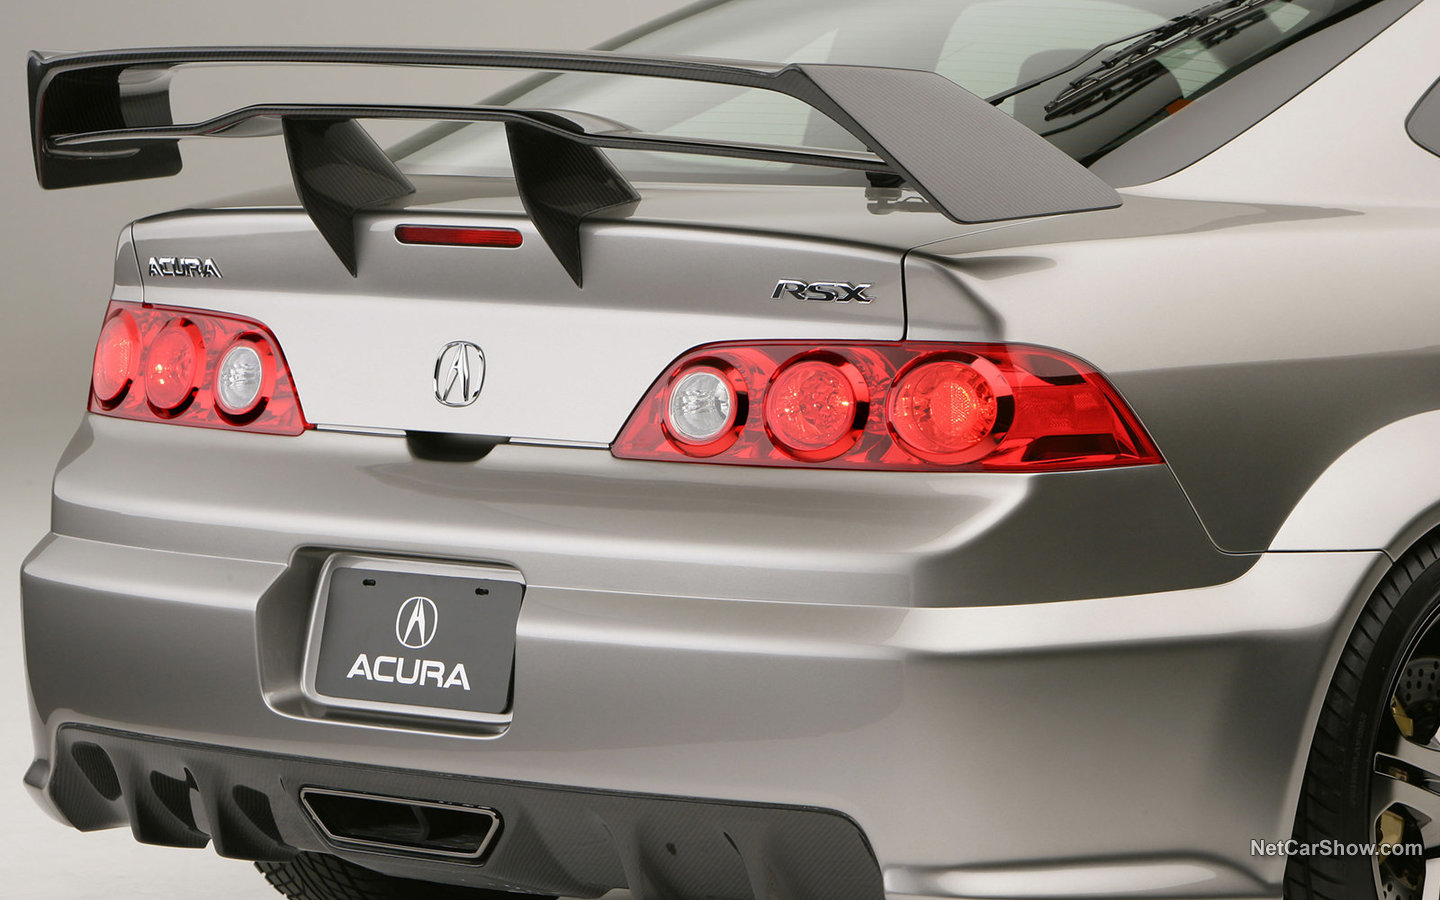 Acura RSX A-Spec Concept 2005 9aaa95b4